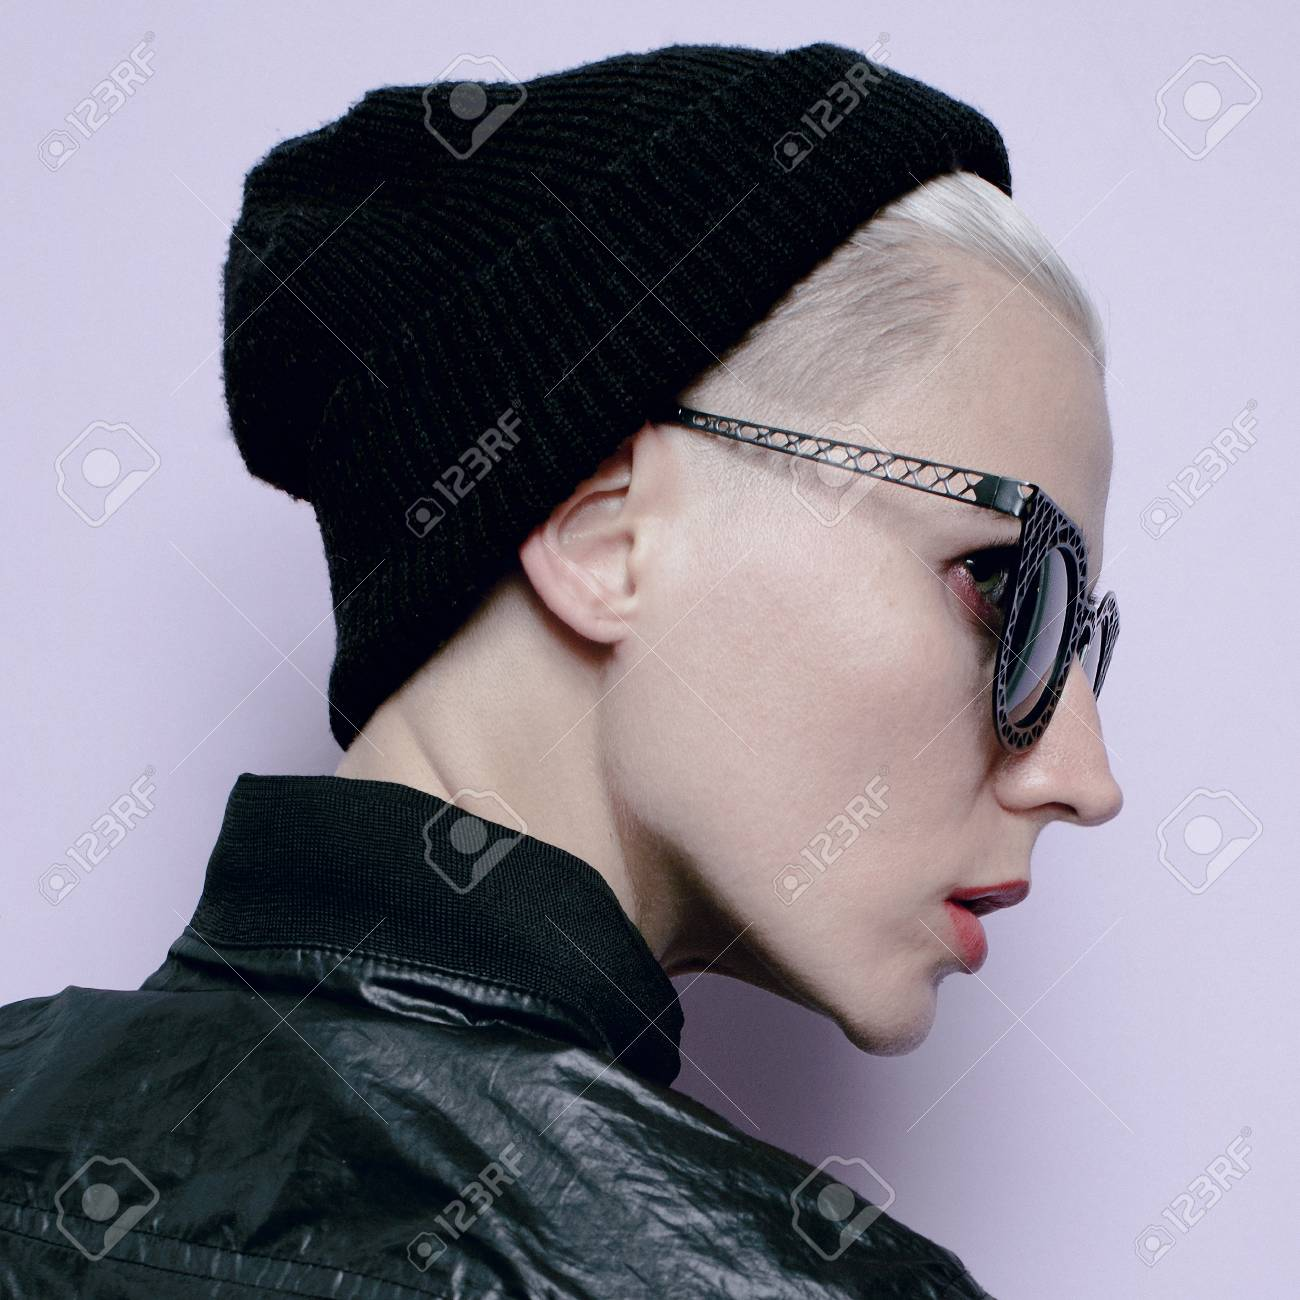 hipster girl tomboy style black fashion stylish beanie hat stock